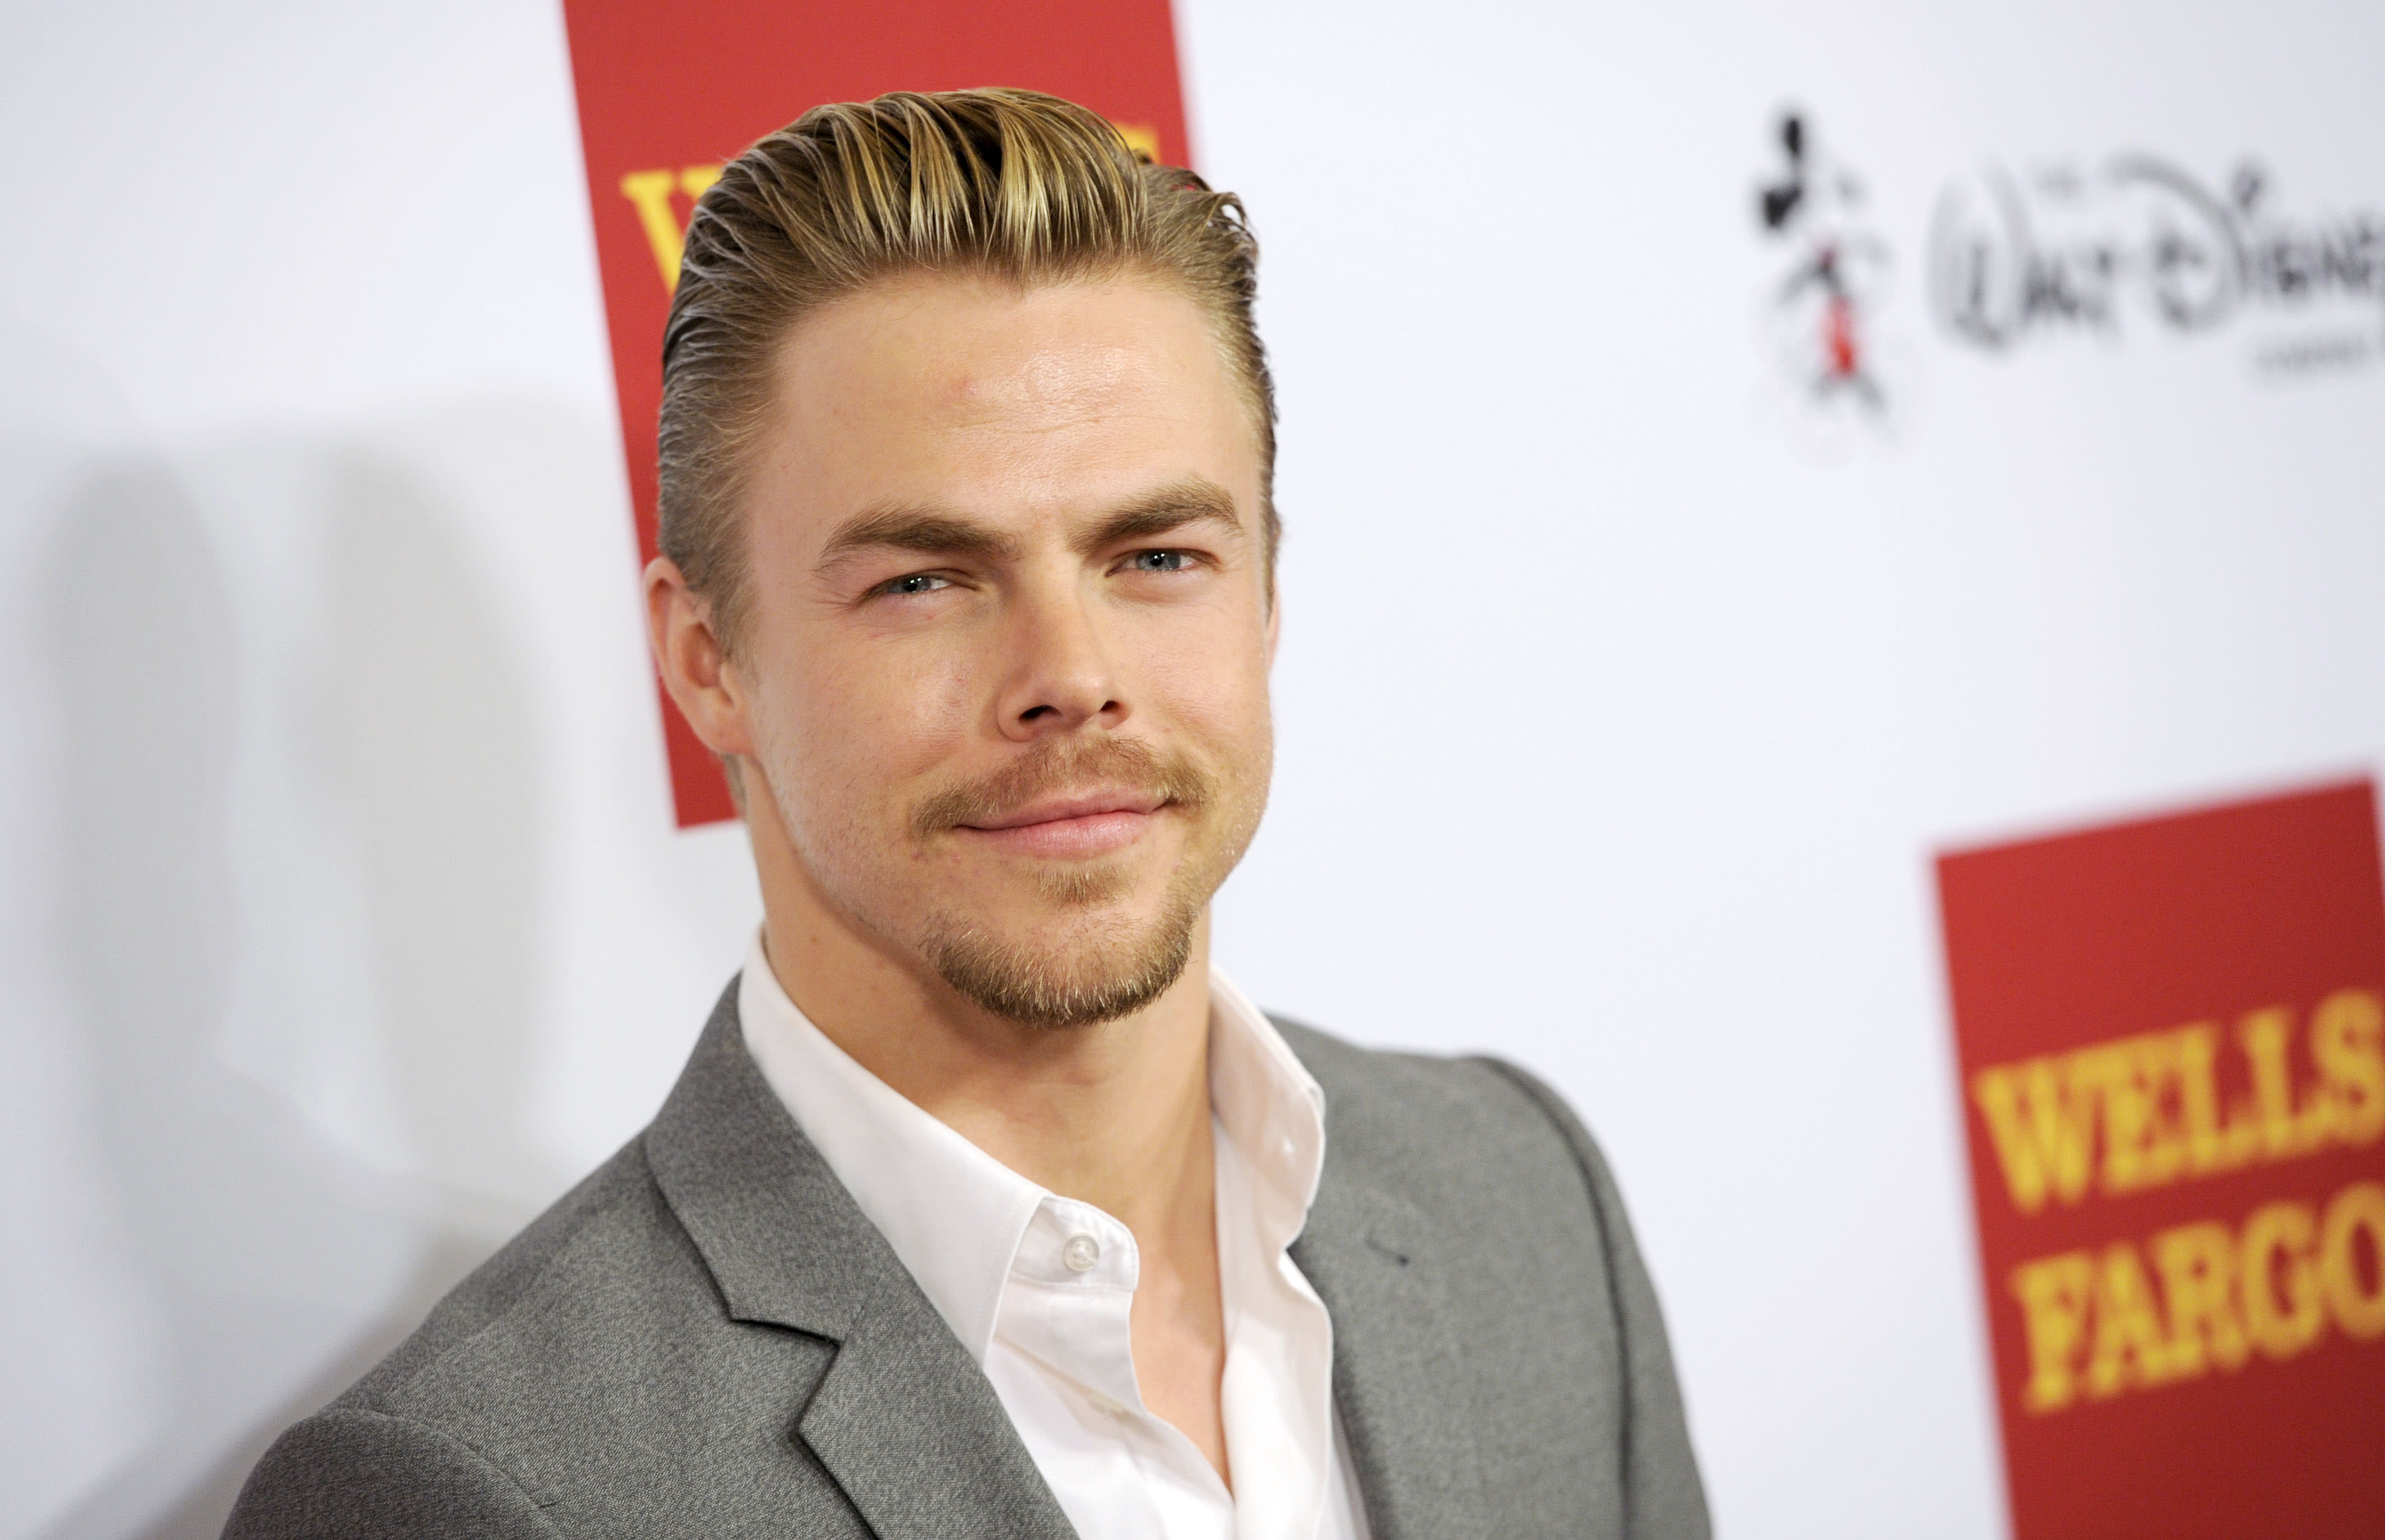 Derek Hough says he's being careful after 'Dancing' injuries